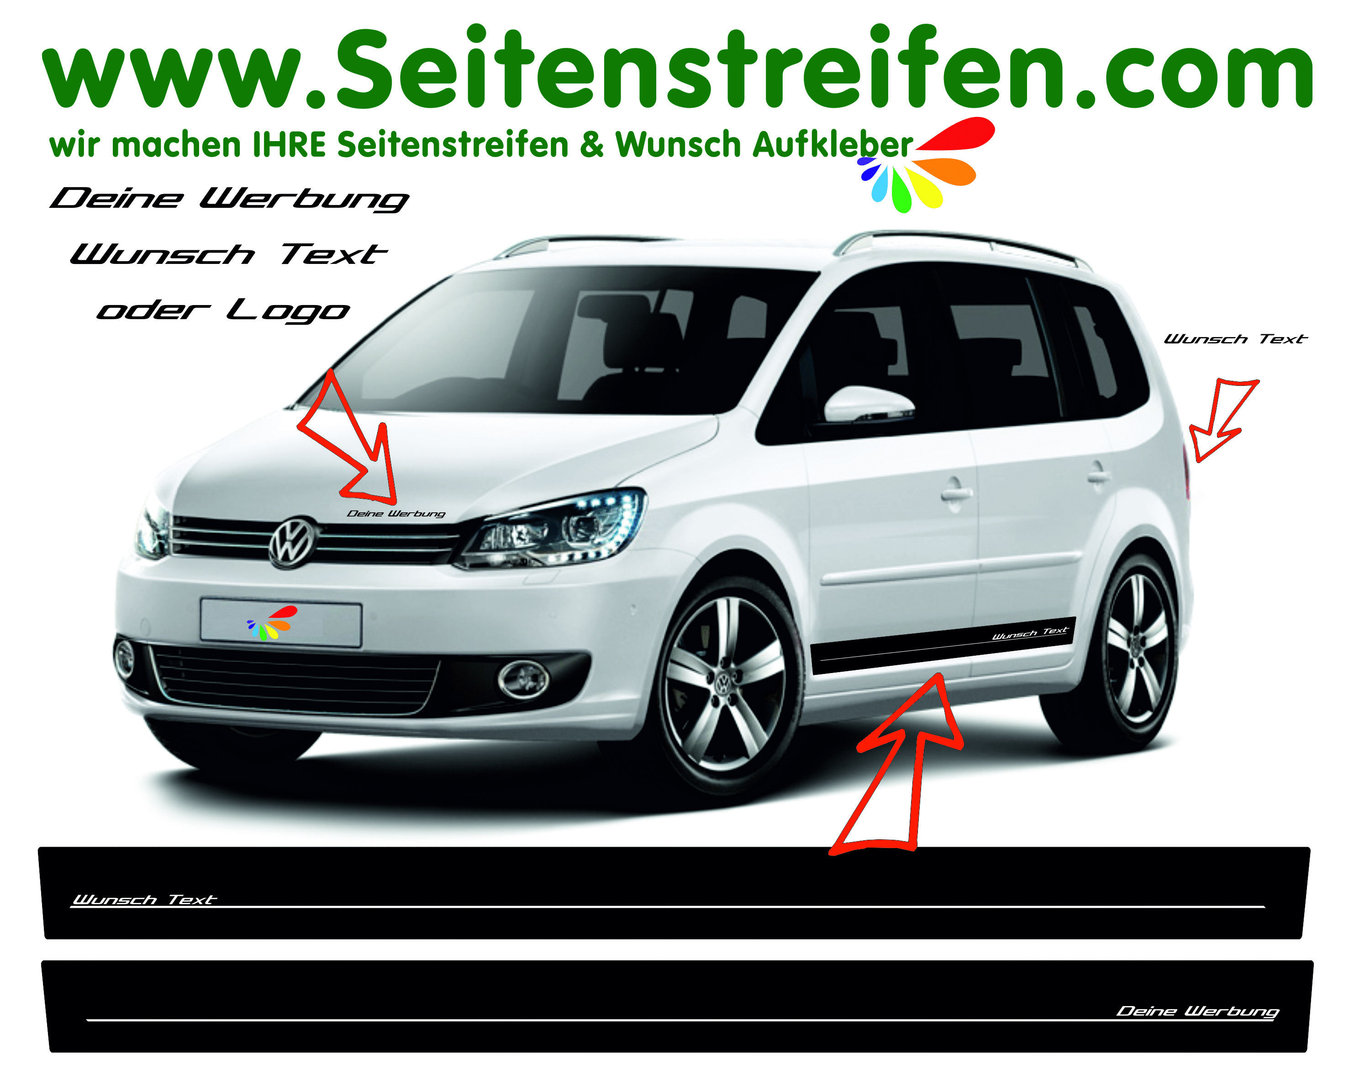 VW Touran - YOUR TEXT / ADVERTISEMENT - Side Stripes Graphics Decals Sticker Kit - N° 4776